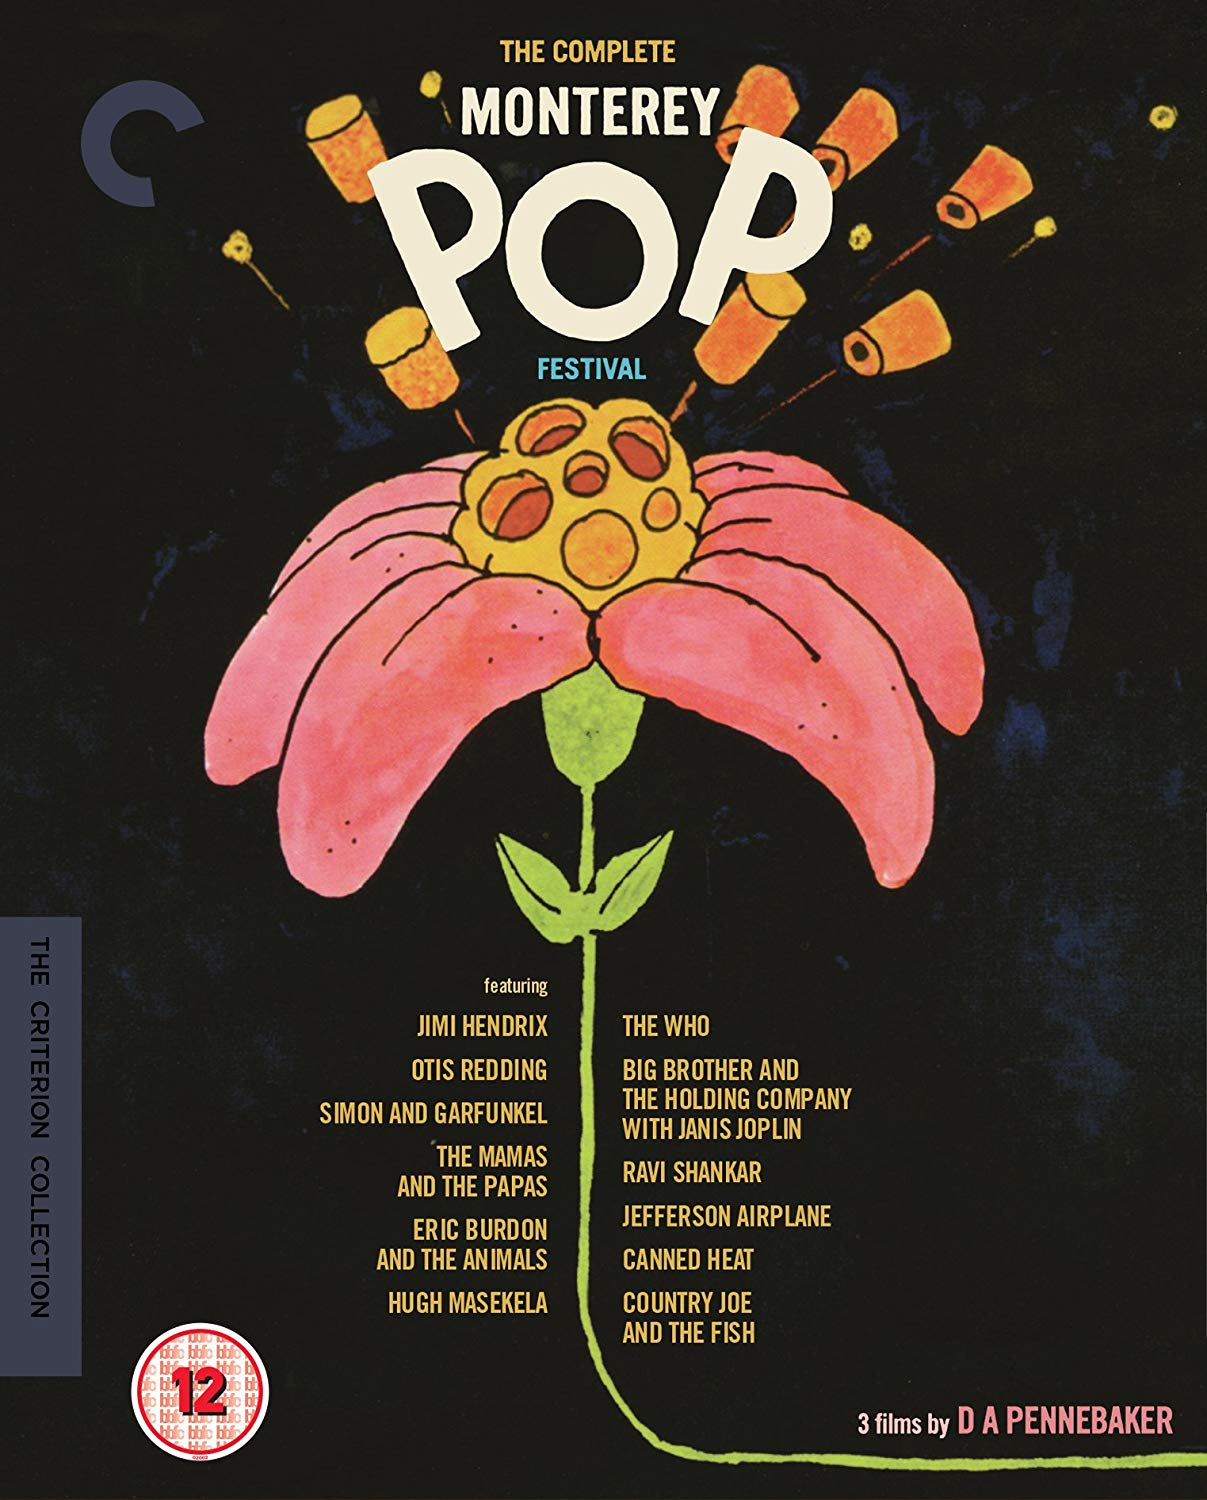 Buy The Complete Monterey Pop Festival (Blu-ray)